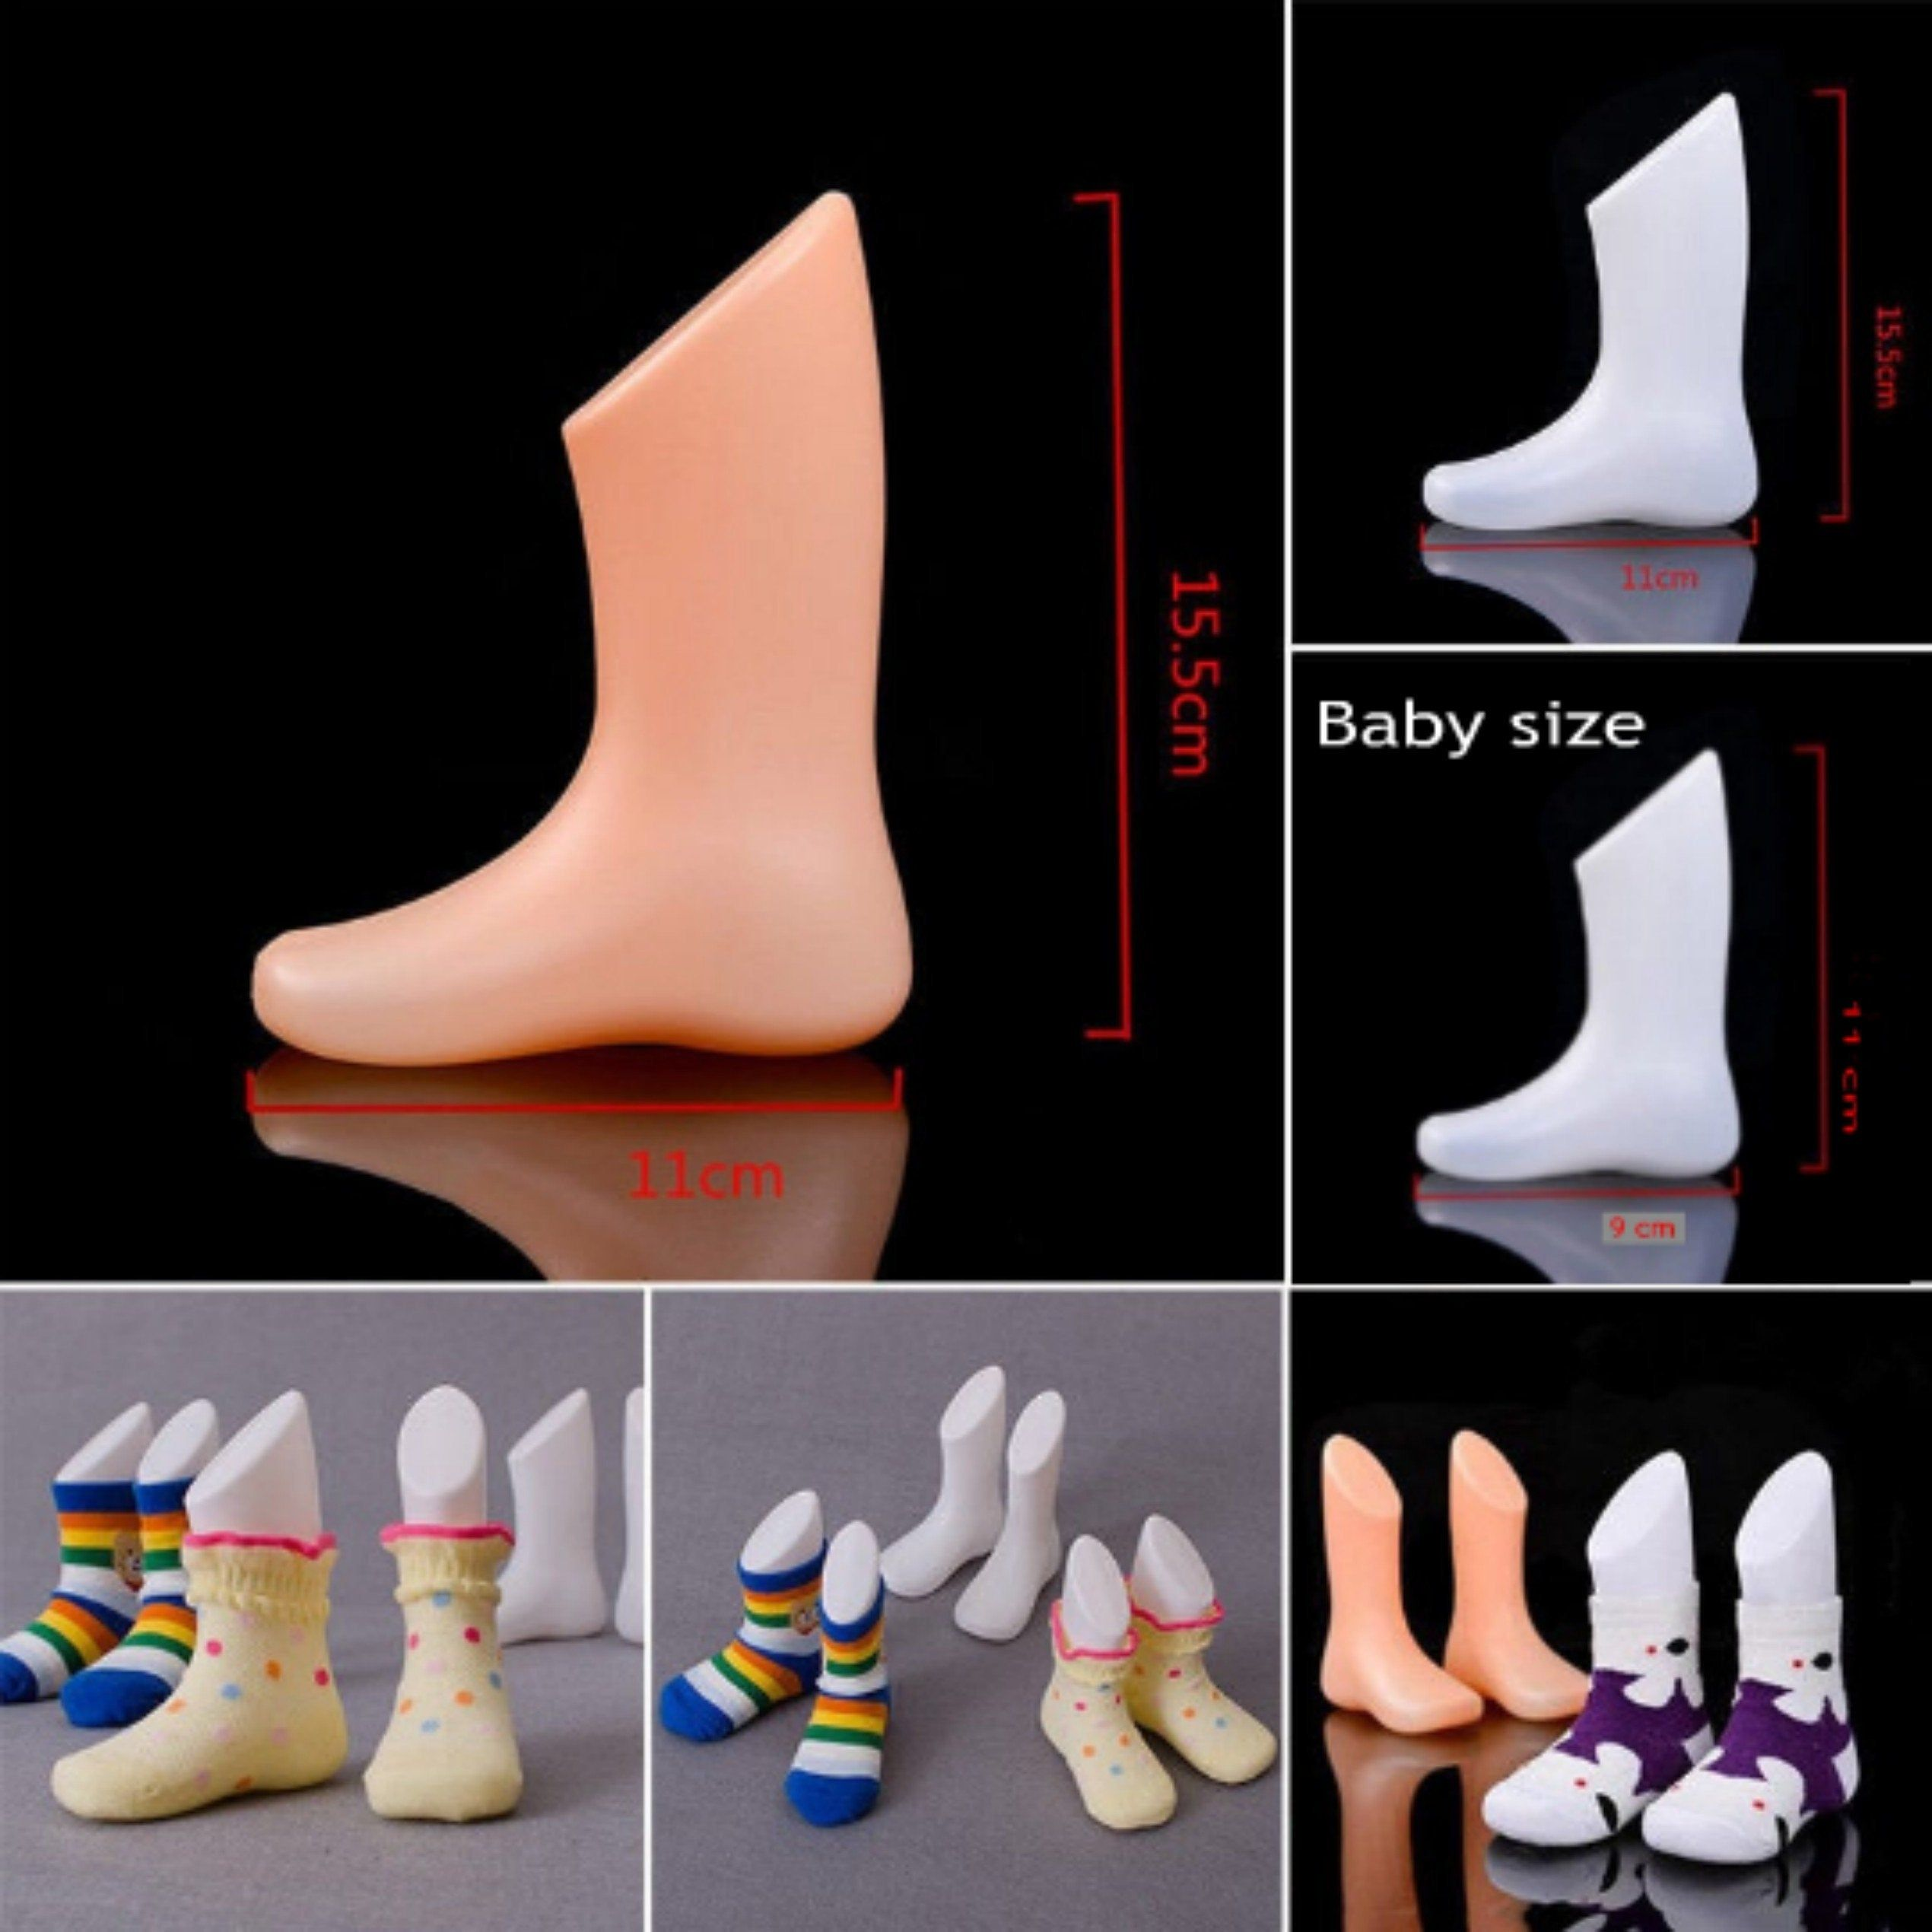 Mannequin!Mannequin for knitting  socks!Pair of Display Mannequin Feet Sock Shoes Photography Ideal For Displays